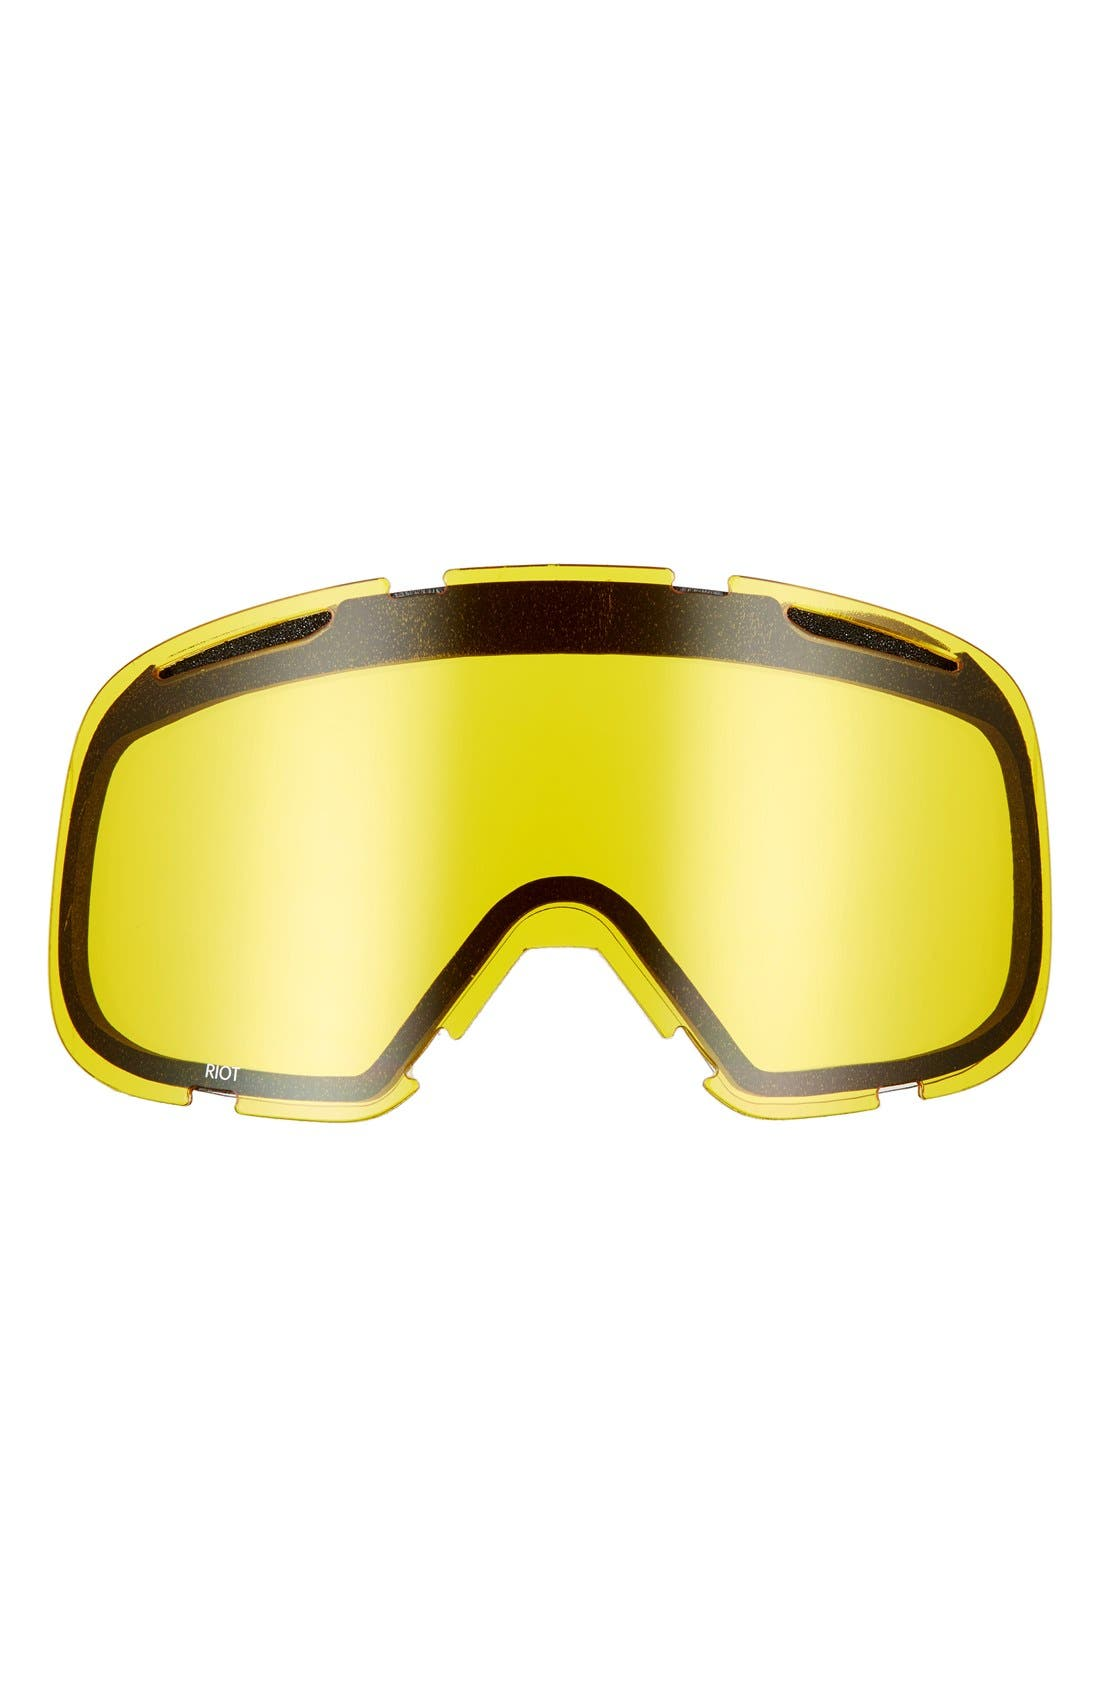 'Riot' Snow Goggles,                             Alternate thumbnail 3, color,                             001